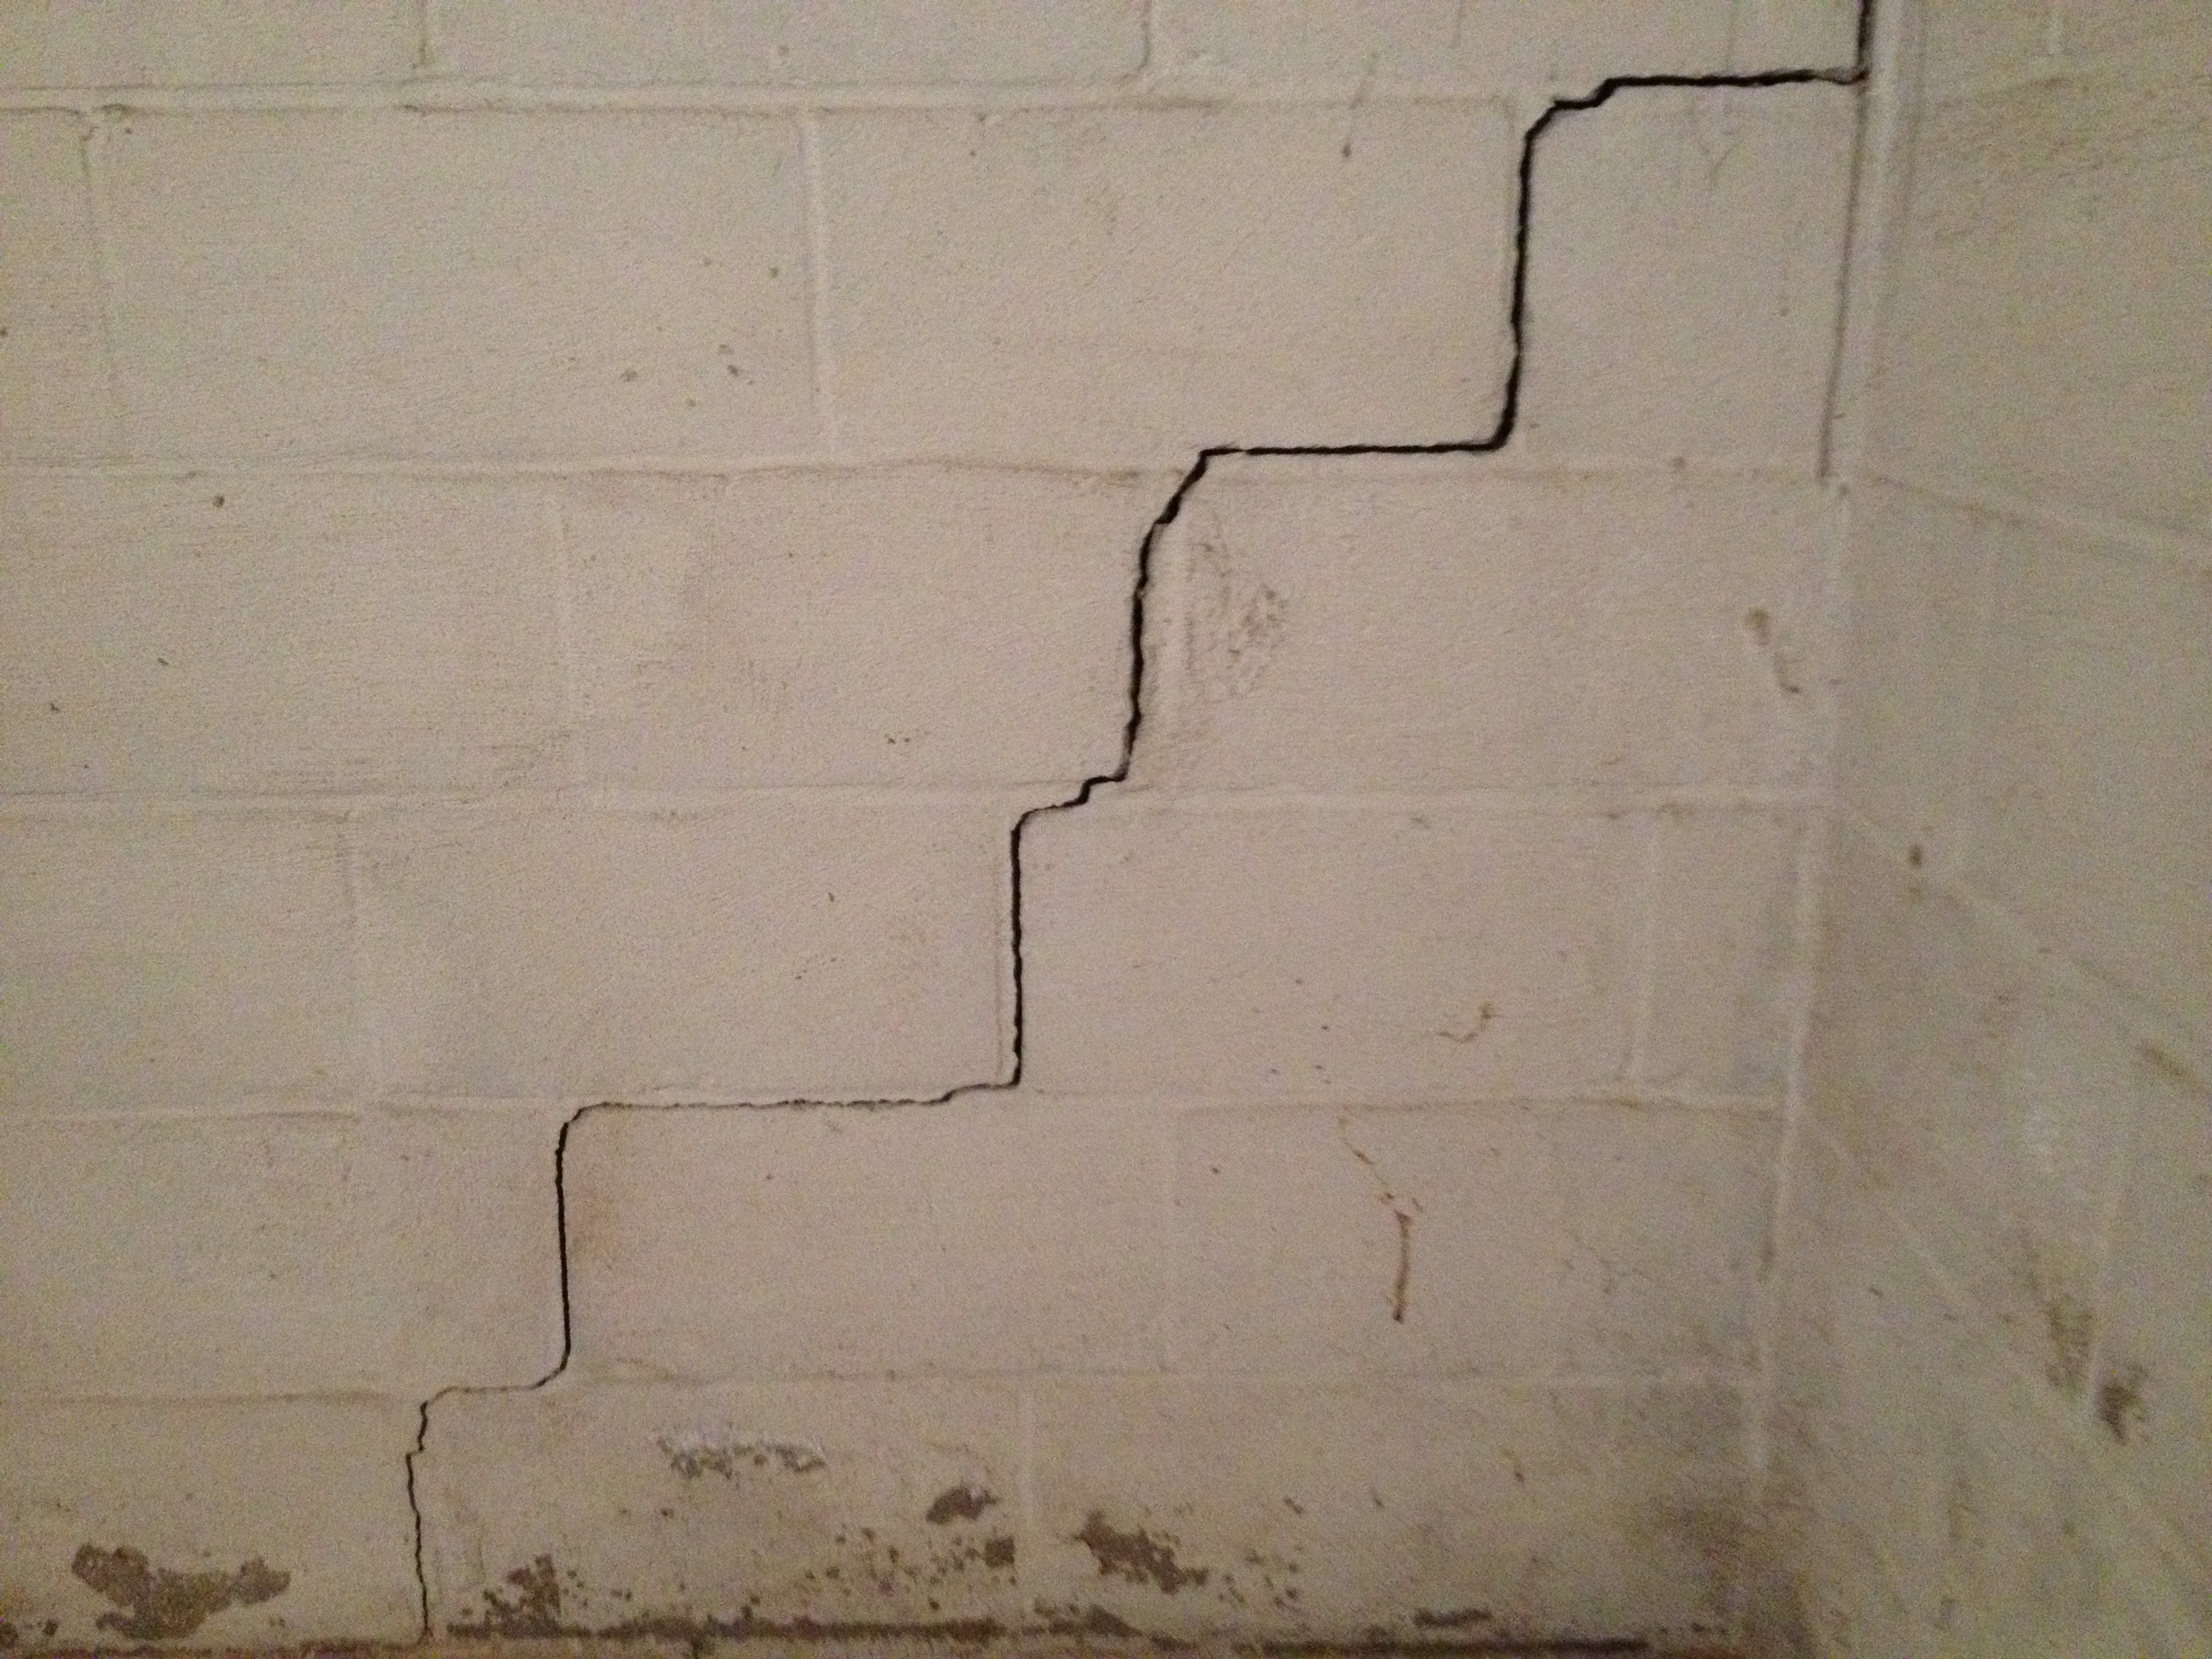 Repairing Basement Block Wall Cracks